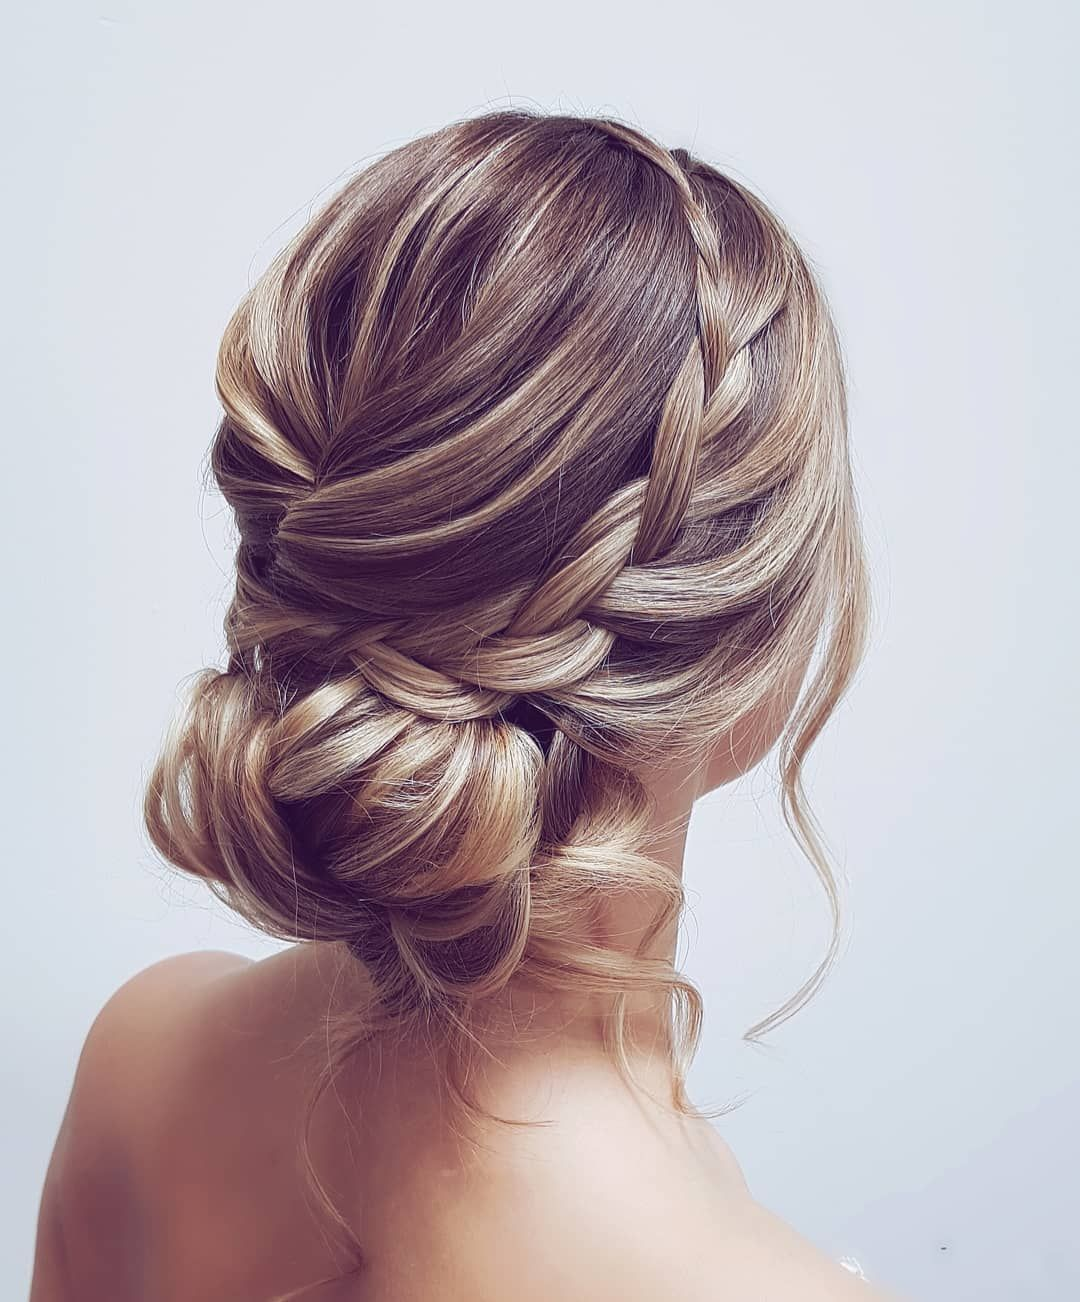 Wedding Hairstyle Courses: Thank You So Much To Everyone For Your Enquiries!!! So